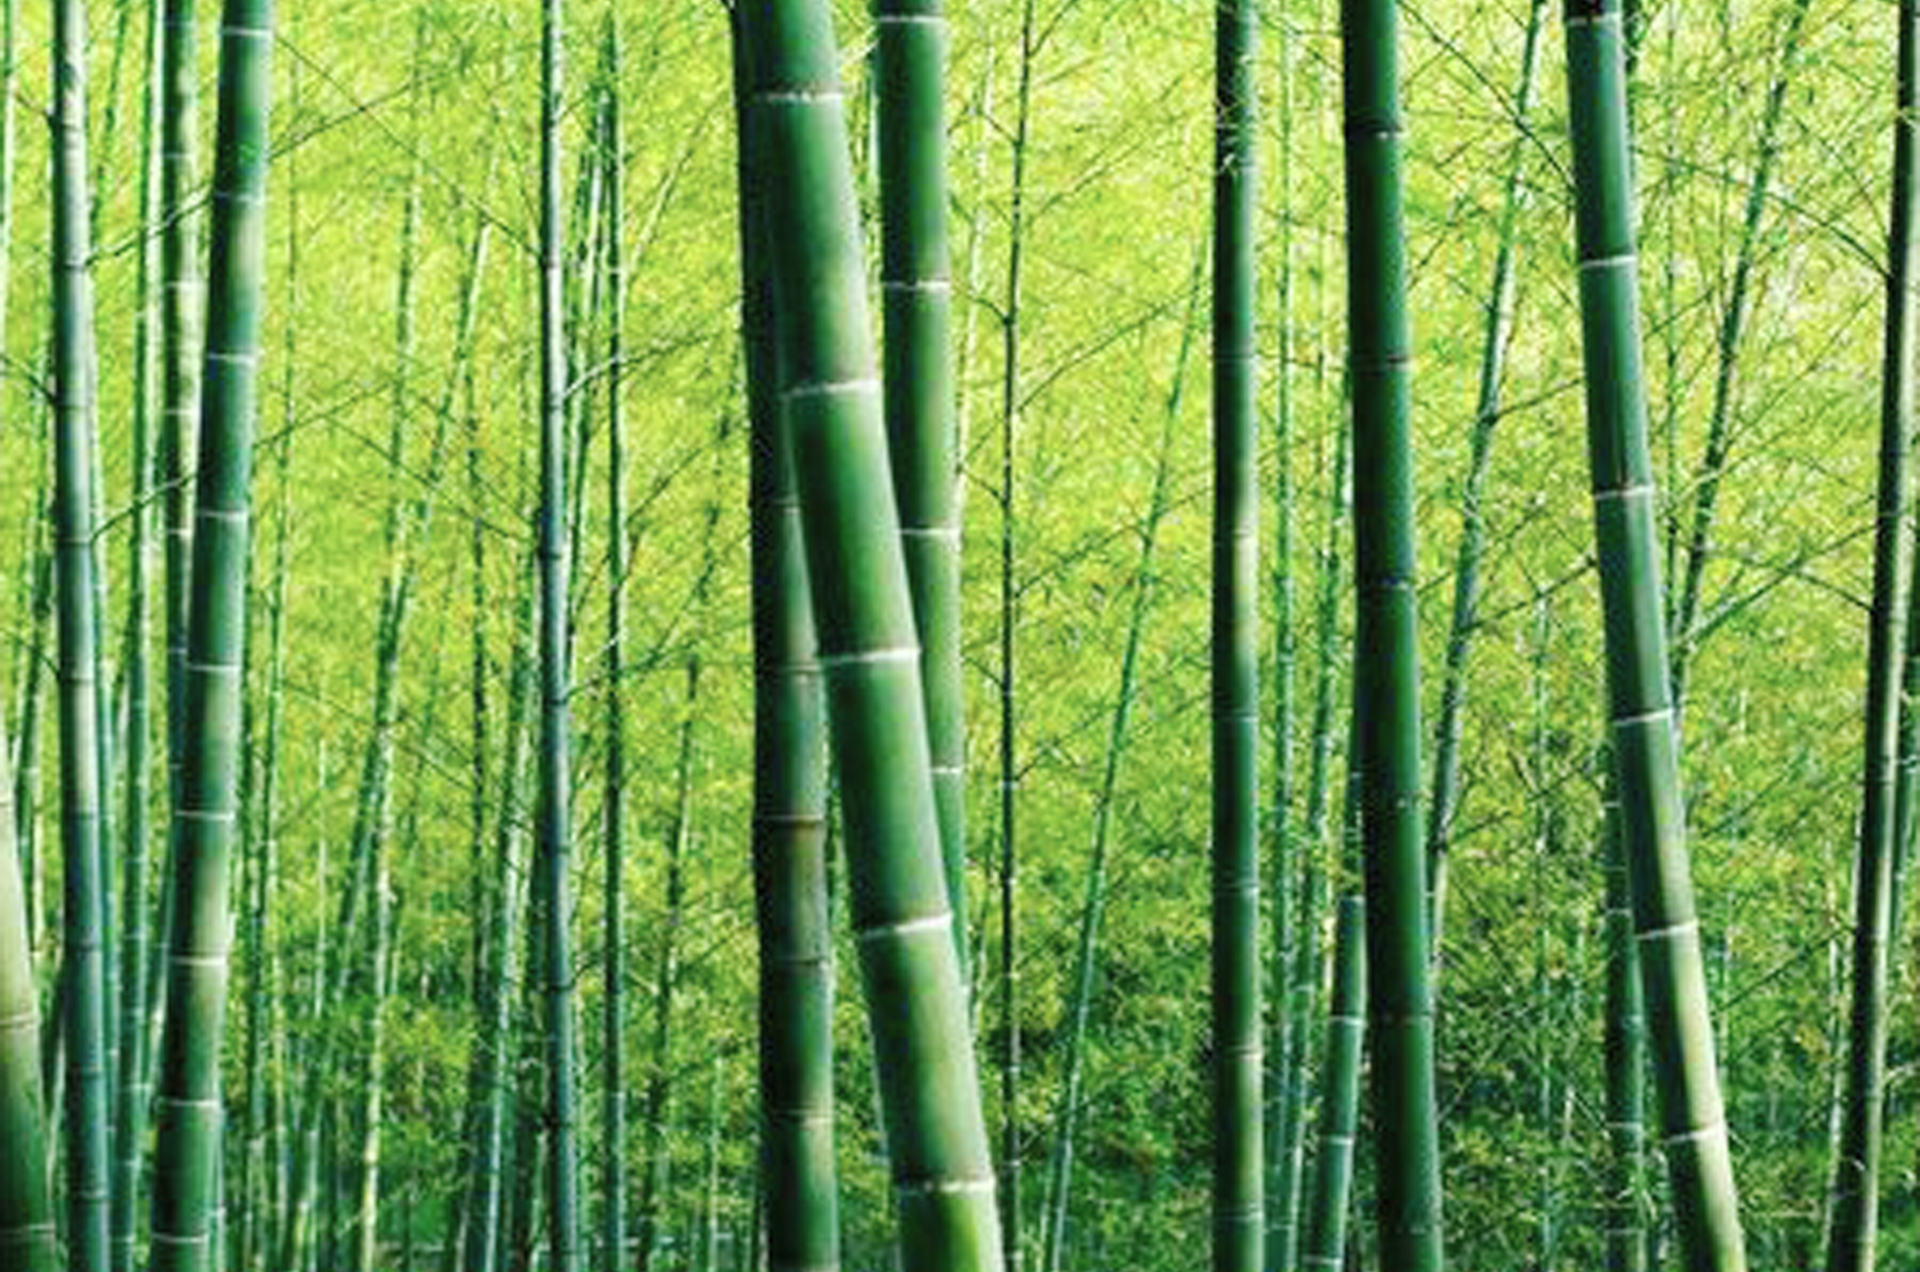 bamboo second image